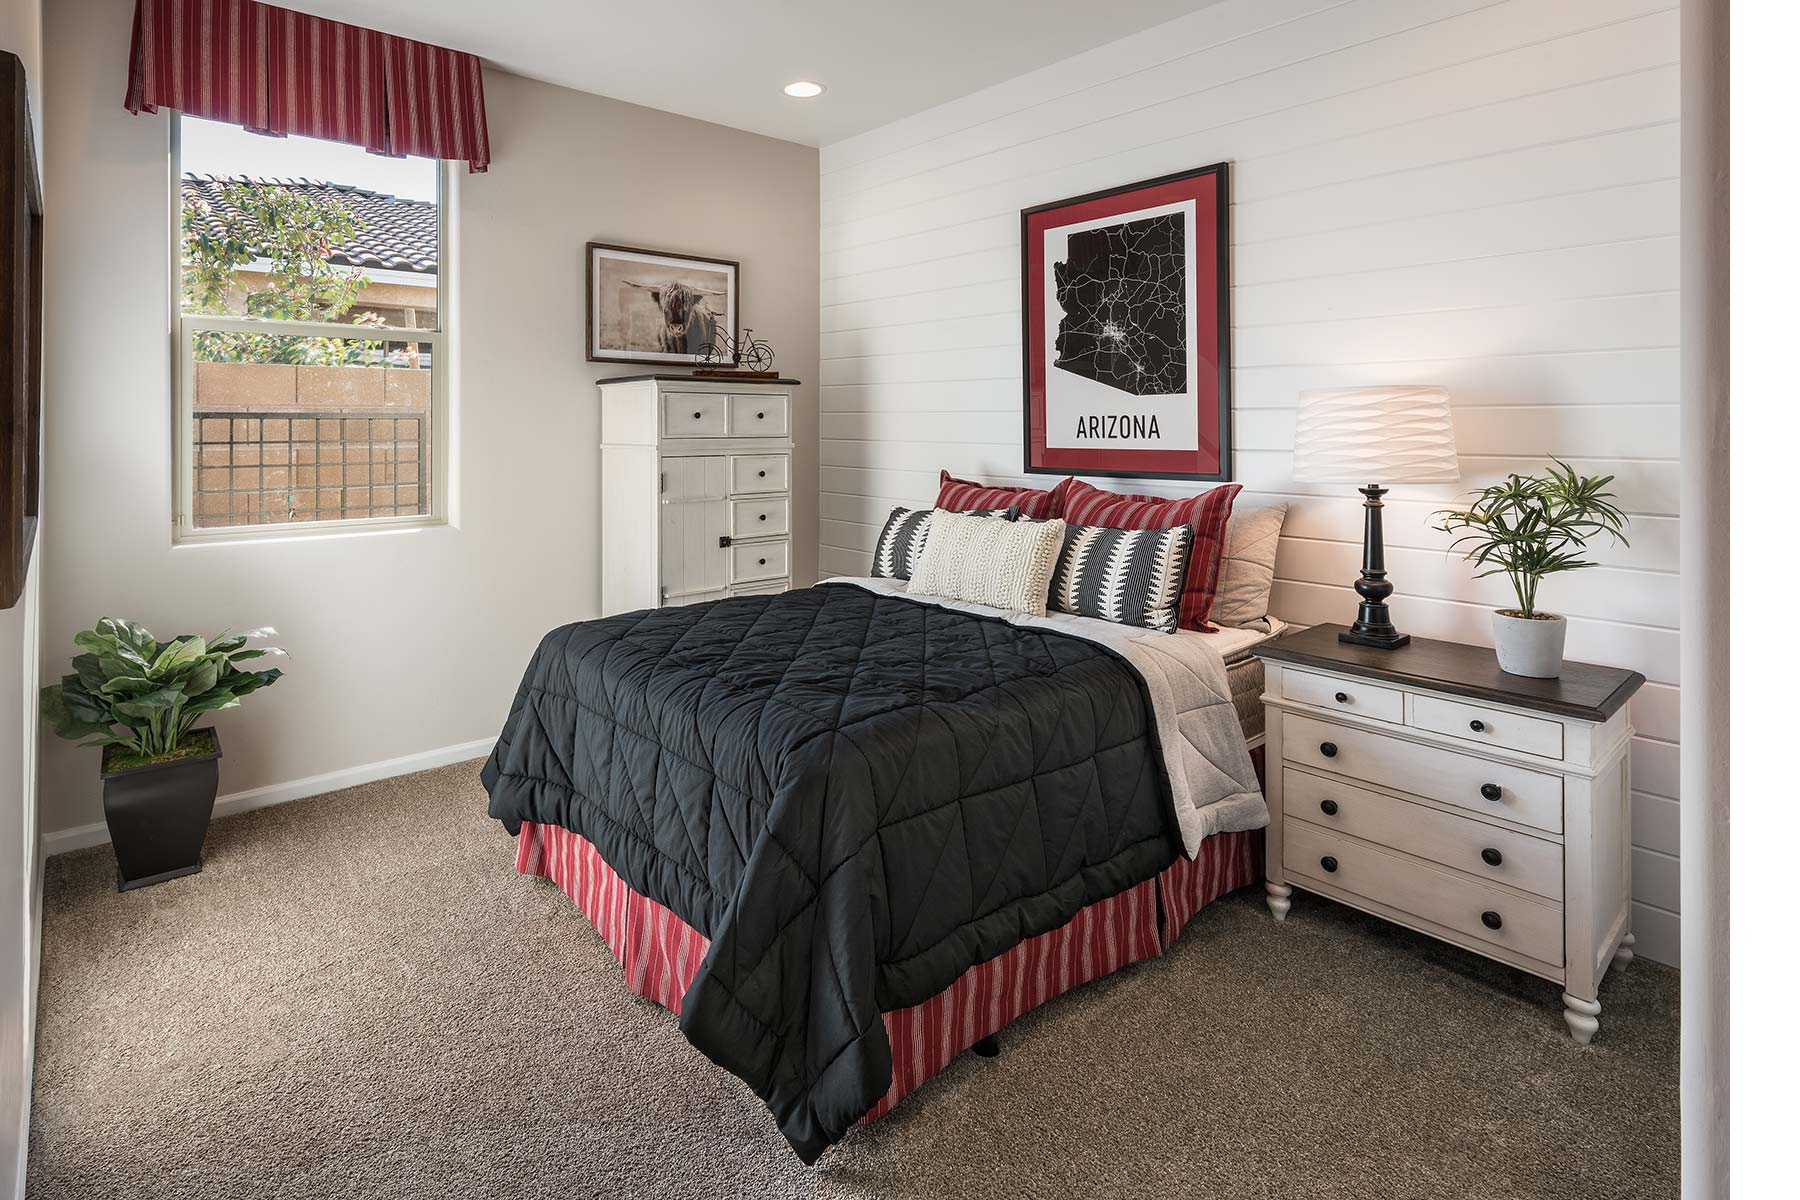 Emory Plan  at Saguaro Trails in Tucson Arizona by Mattamy Homes